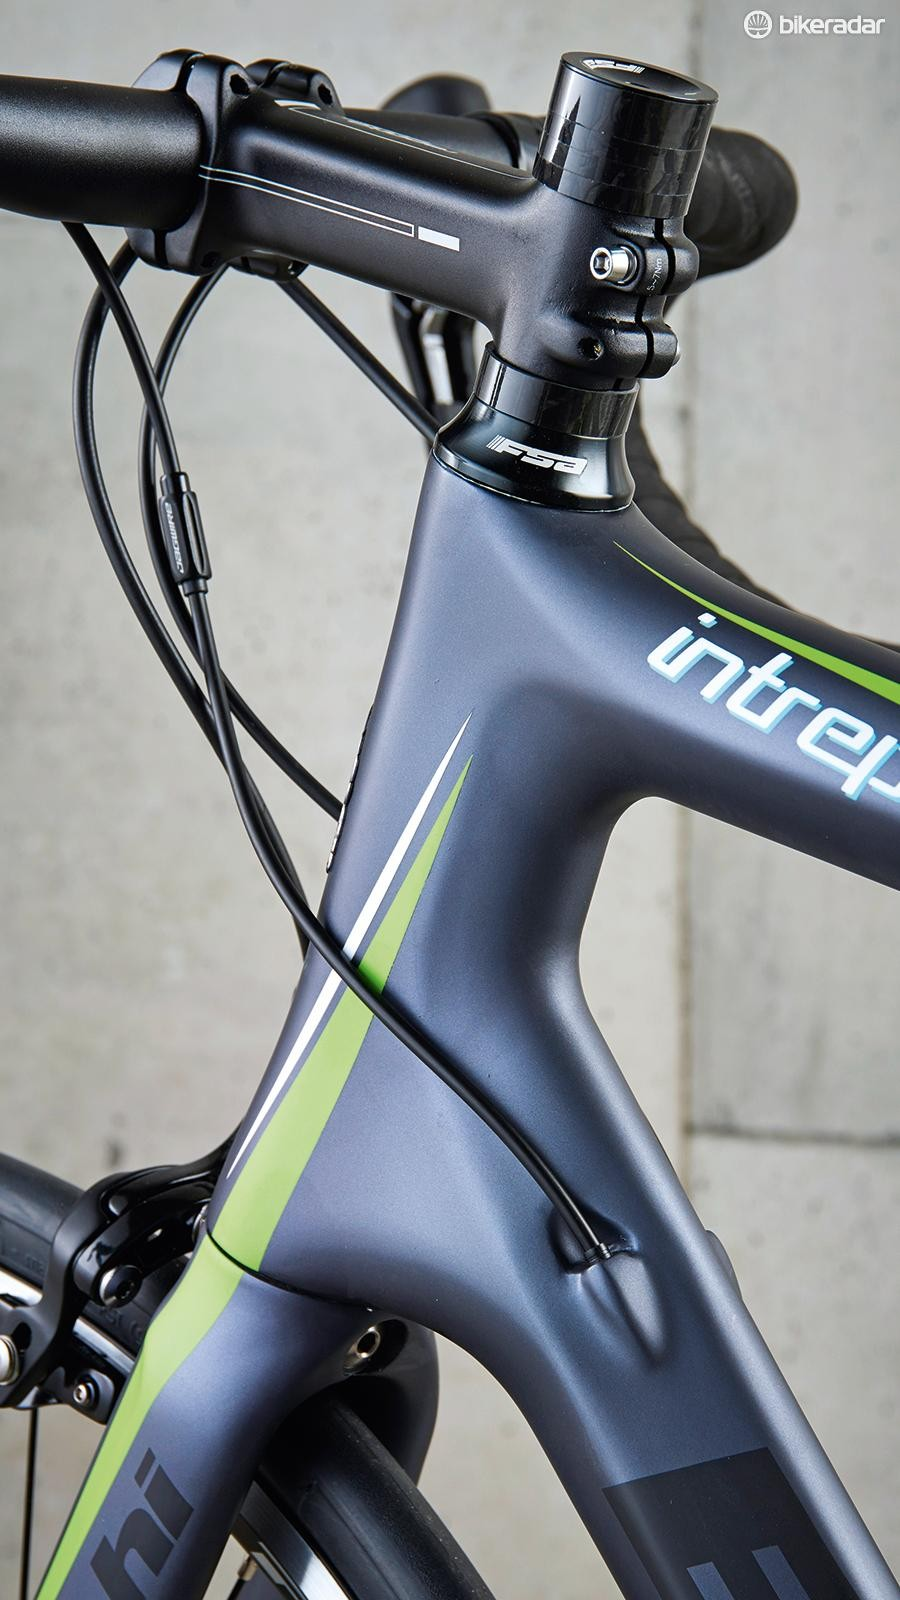 It's smooth lines and full internal cable routing for Bianchi's new Intrepida